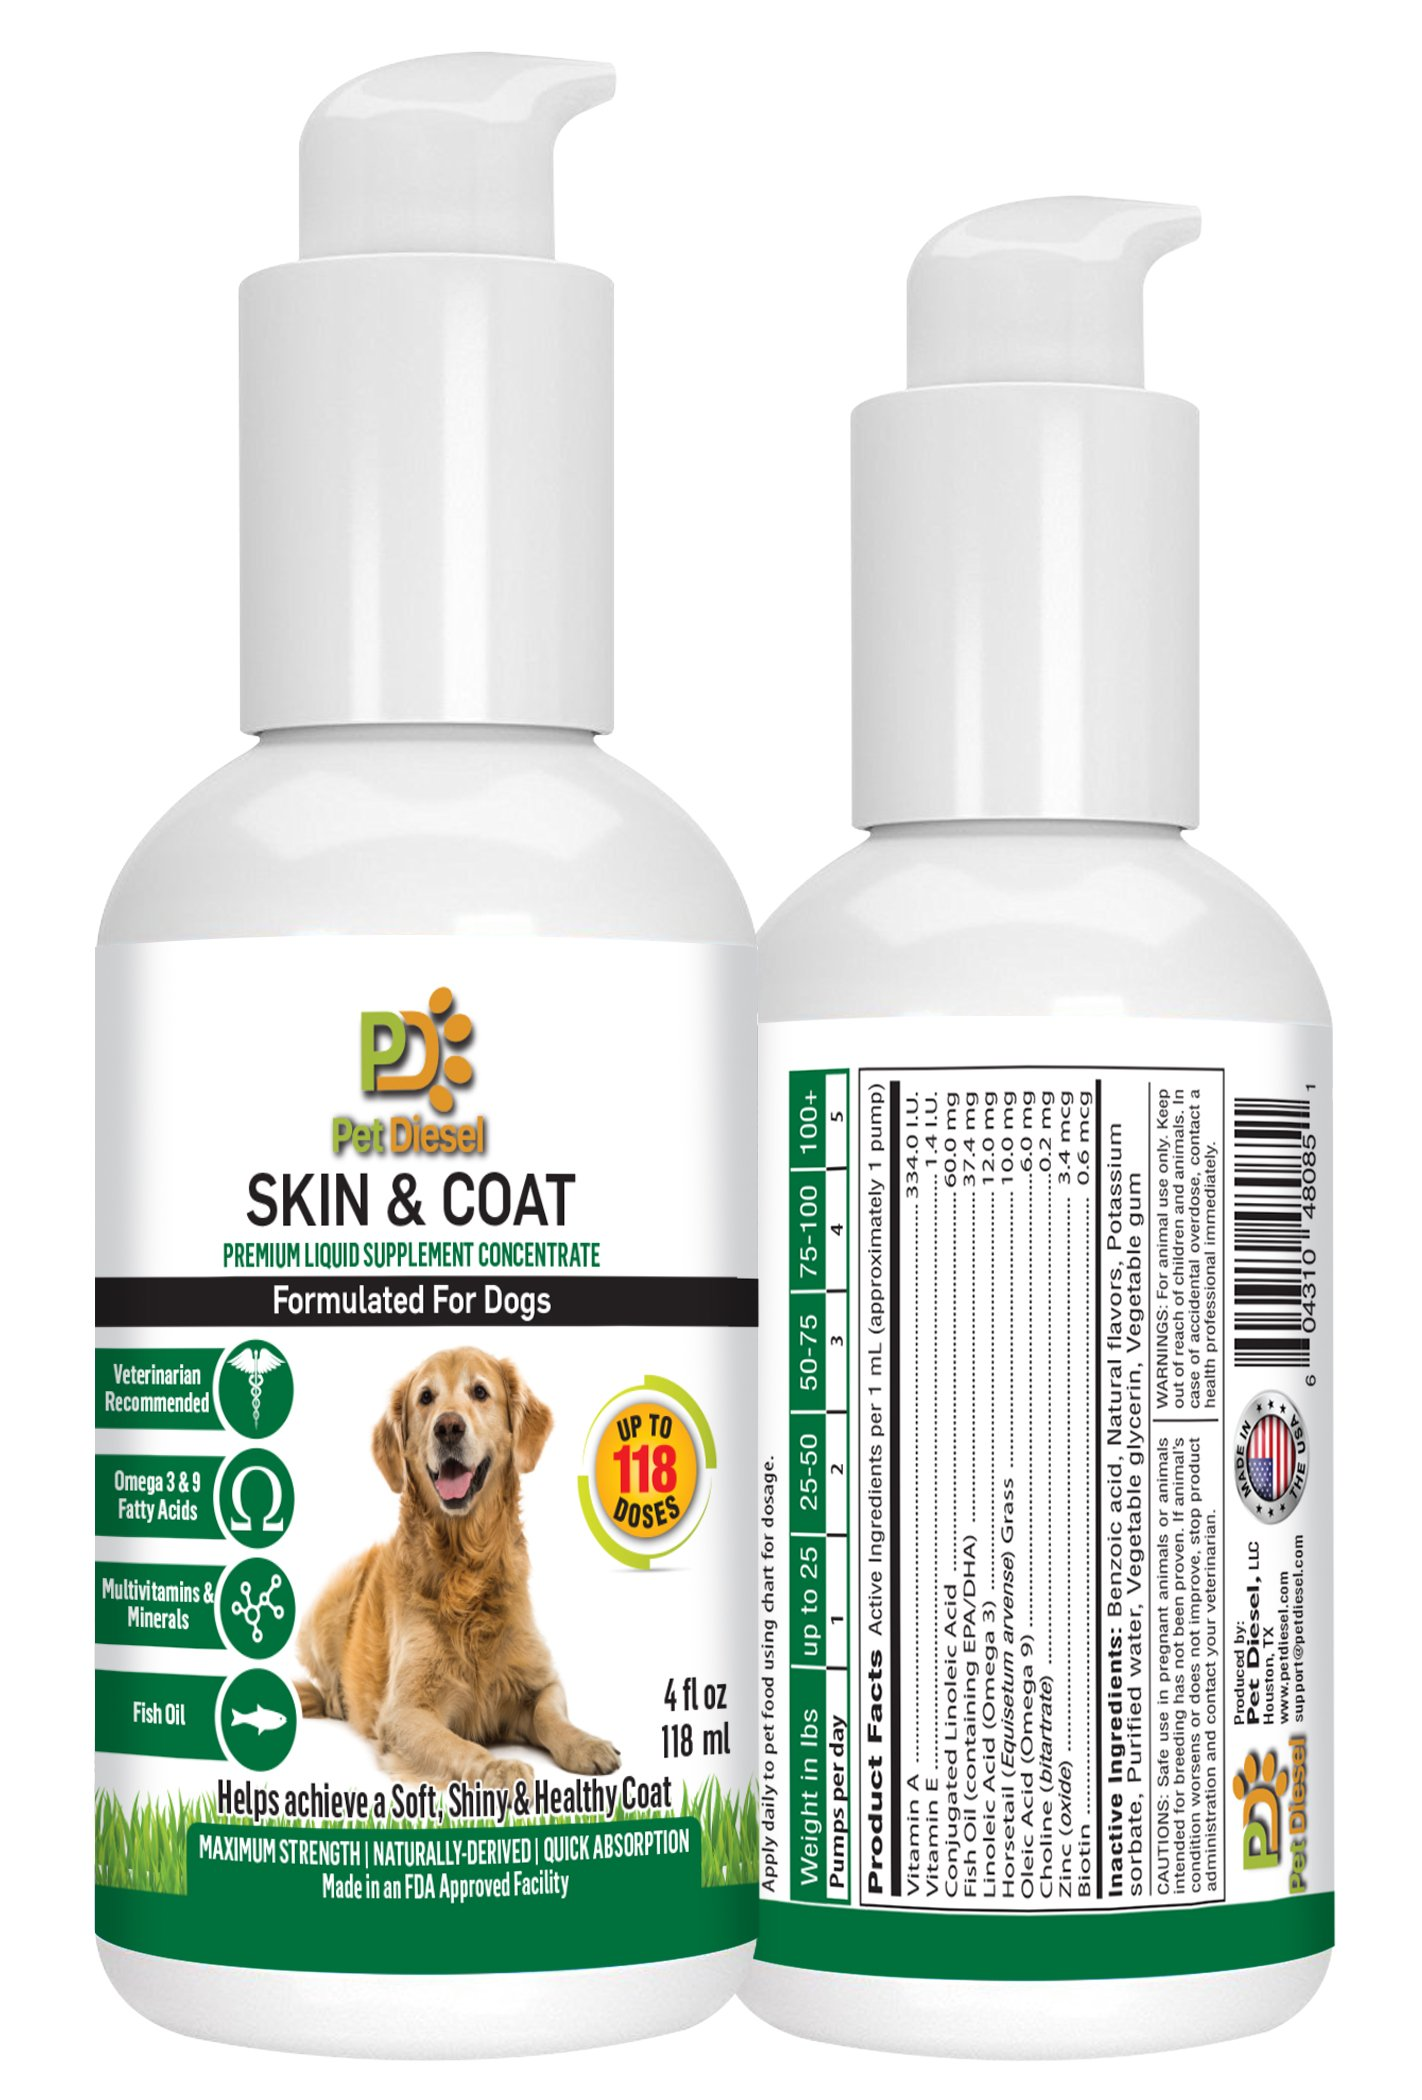 Pet Diesel Skin & Coat Liquid Vitamins/Supplement For Dogs | Naturally Derived Formula | Omega 3 6 & 9 Fatty Acids, Vitamins A & E, Fish Oil For Itchy Dry Skin & Shedding | Enhances Heart And Immunity